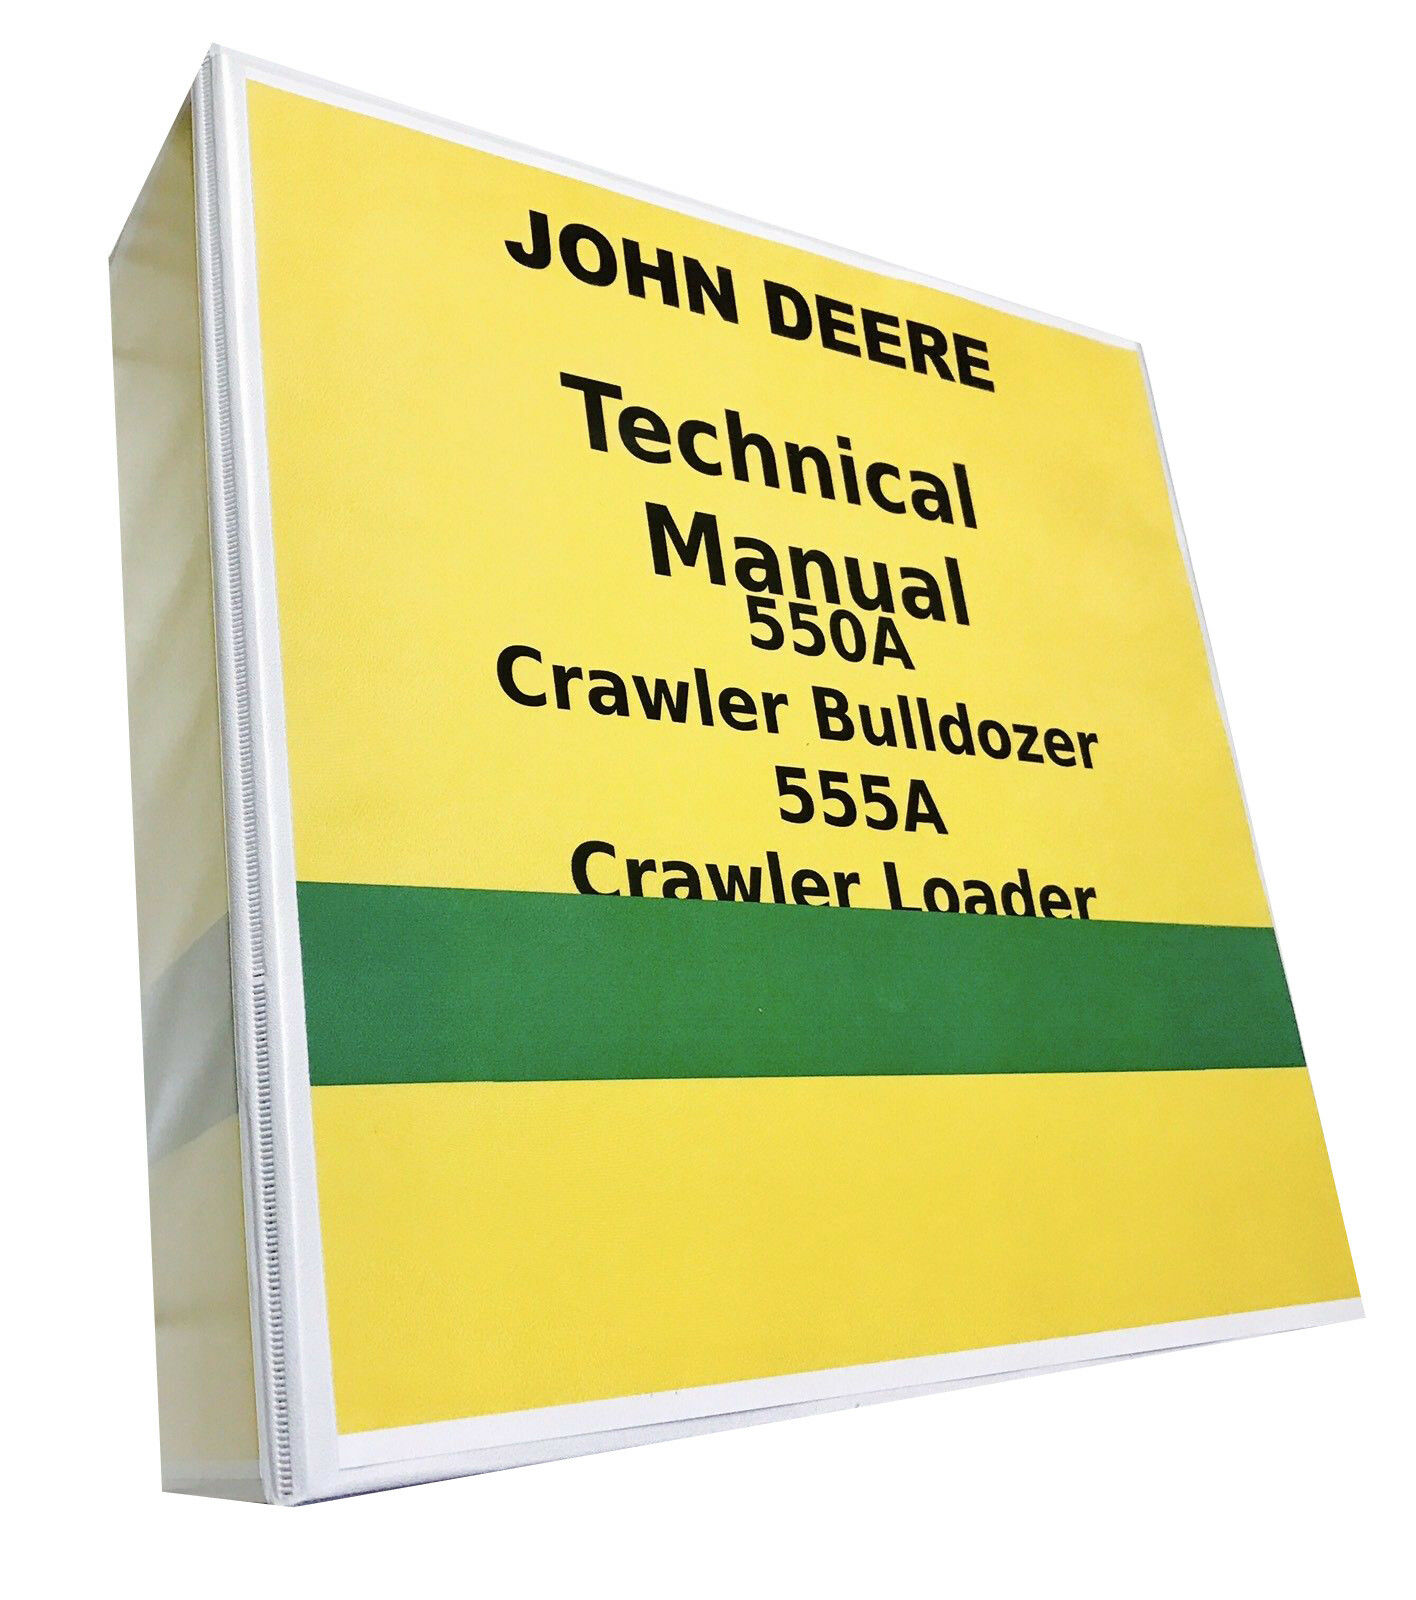 John Deere 555A Crawler Loader Technical Service Repair Shop Manual 896  pages! 1 of 5Only 3 available ...